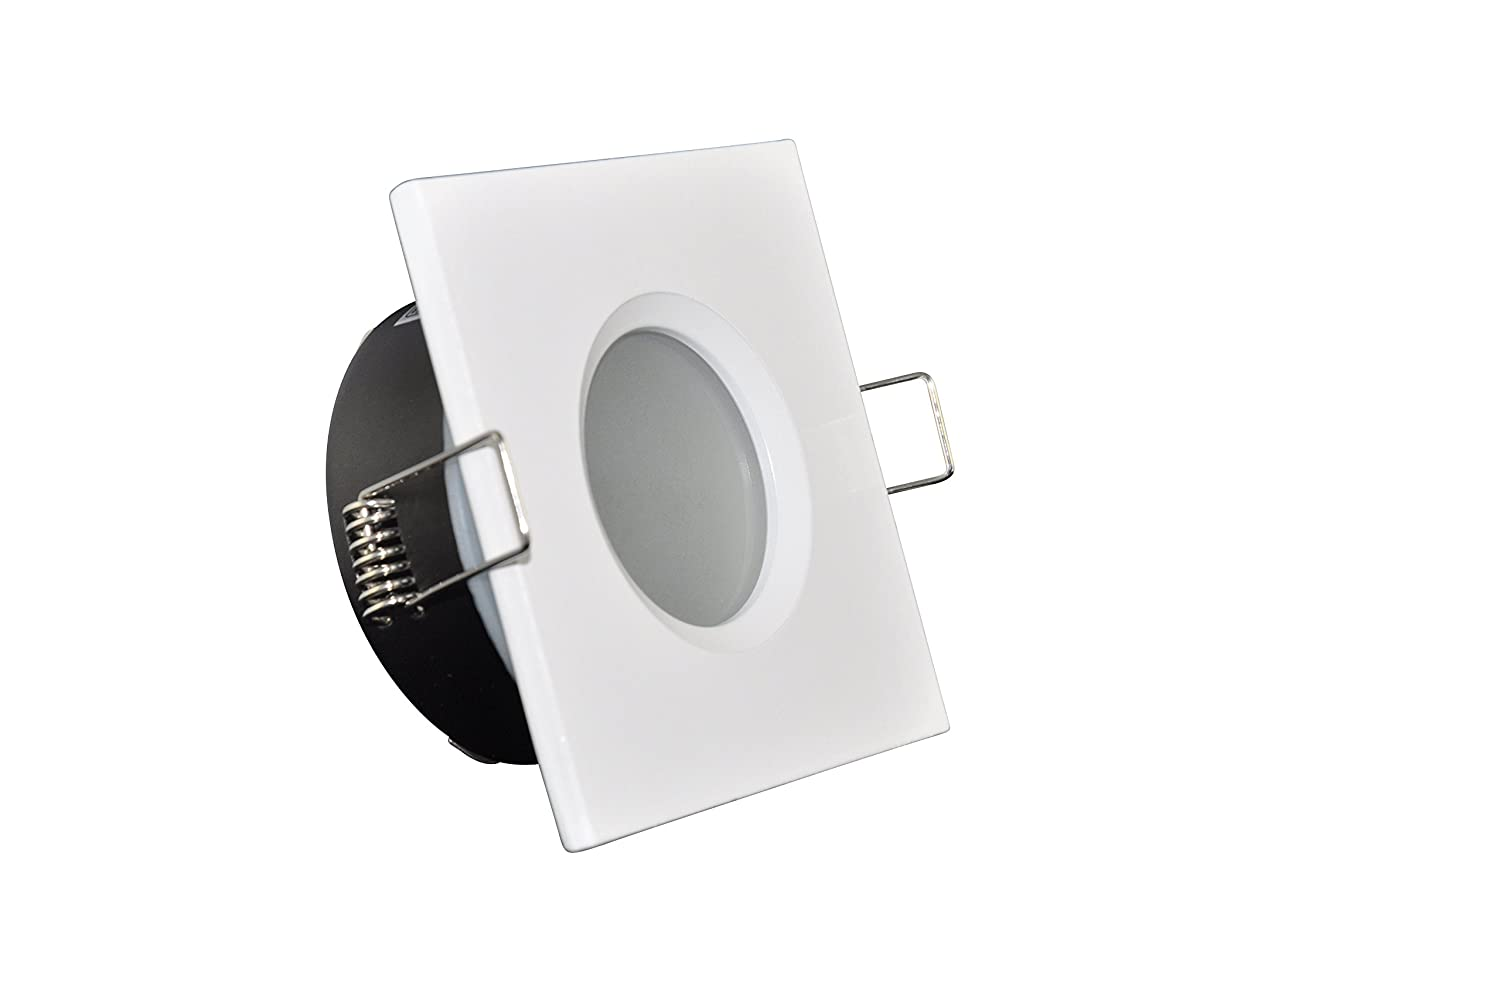 Einabu Bathroom Light IP65 Square (Bulb Not Included) | White | 12 V MR16 230 V GU10 Socket Included Suitable for Halogen and LED Lamp 49 – 51 mm | Waterproof | Rustproof LED-Traumleuchten Hausmarke TIP-2-W